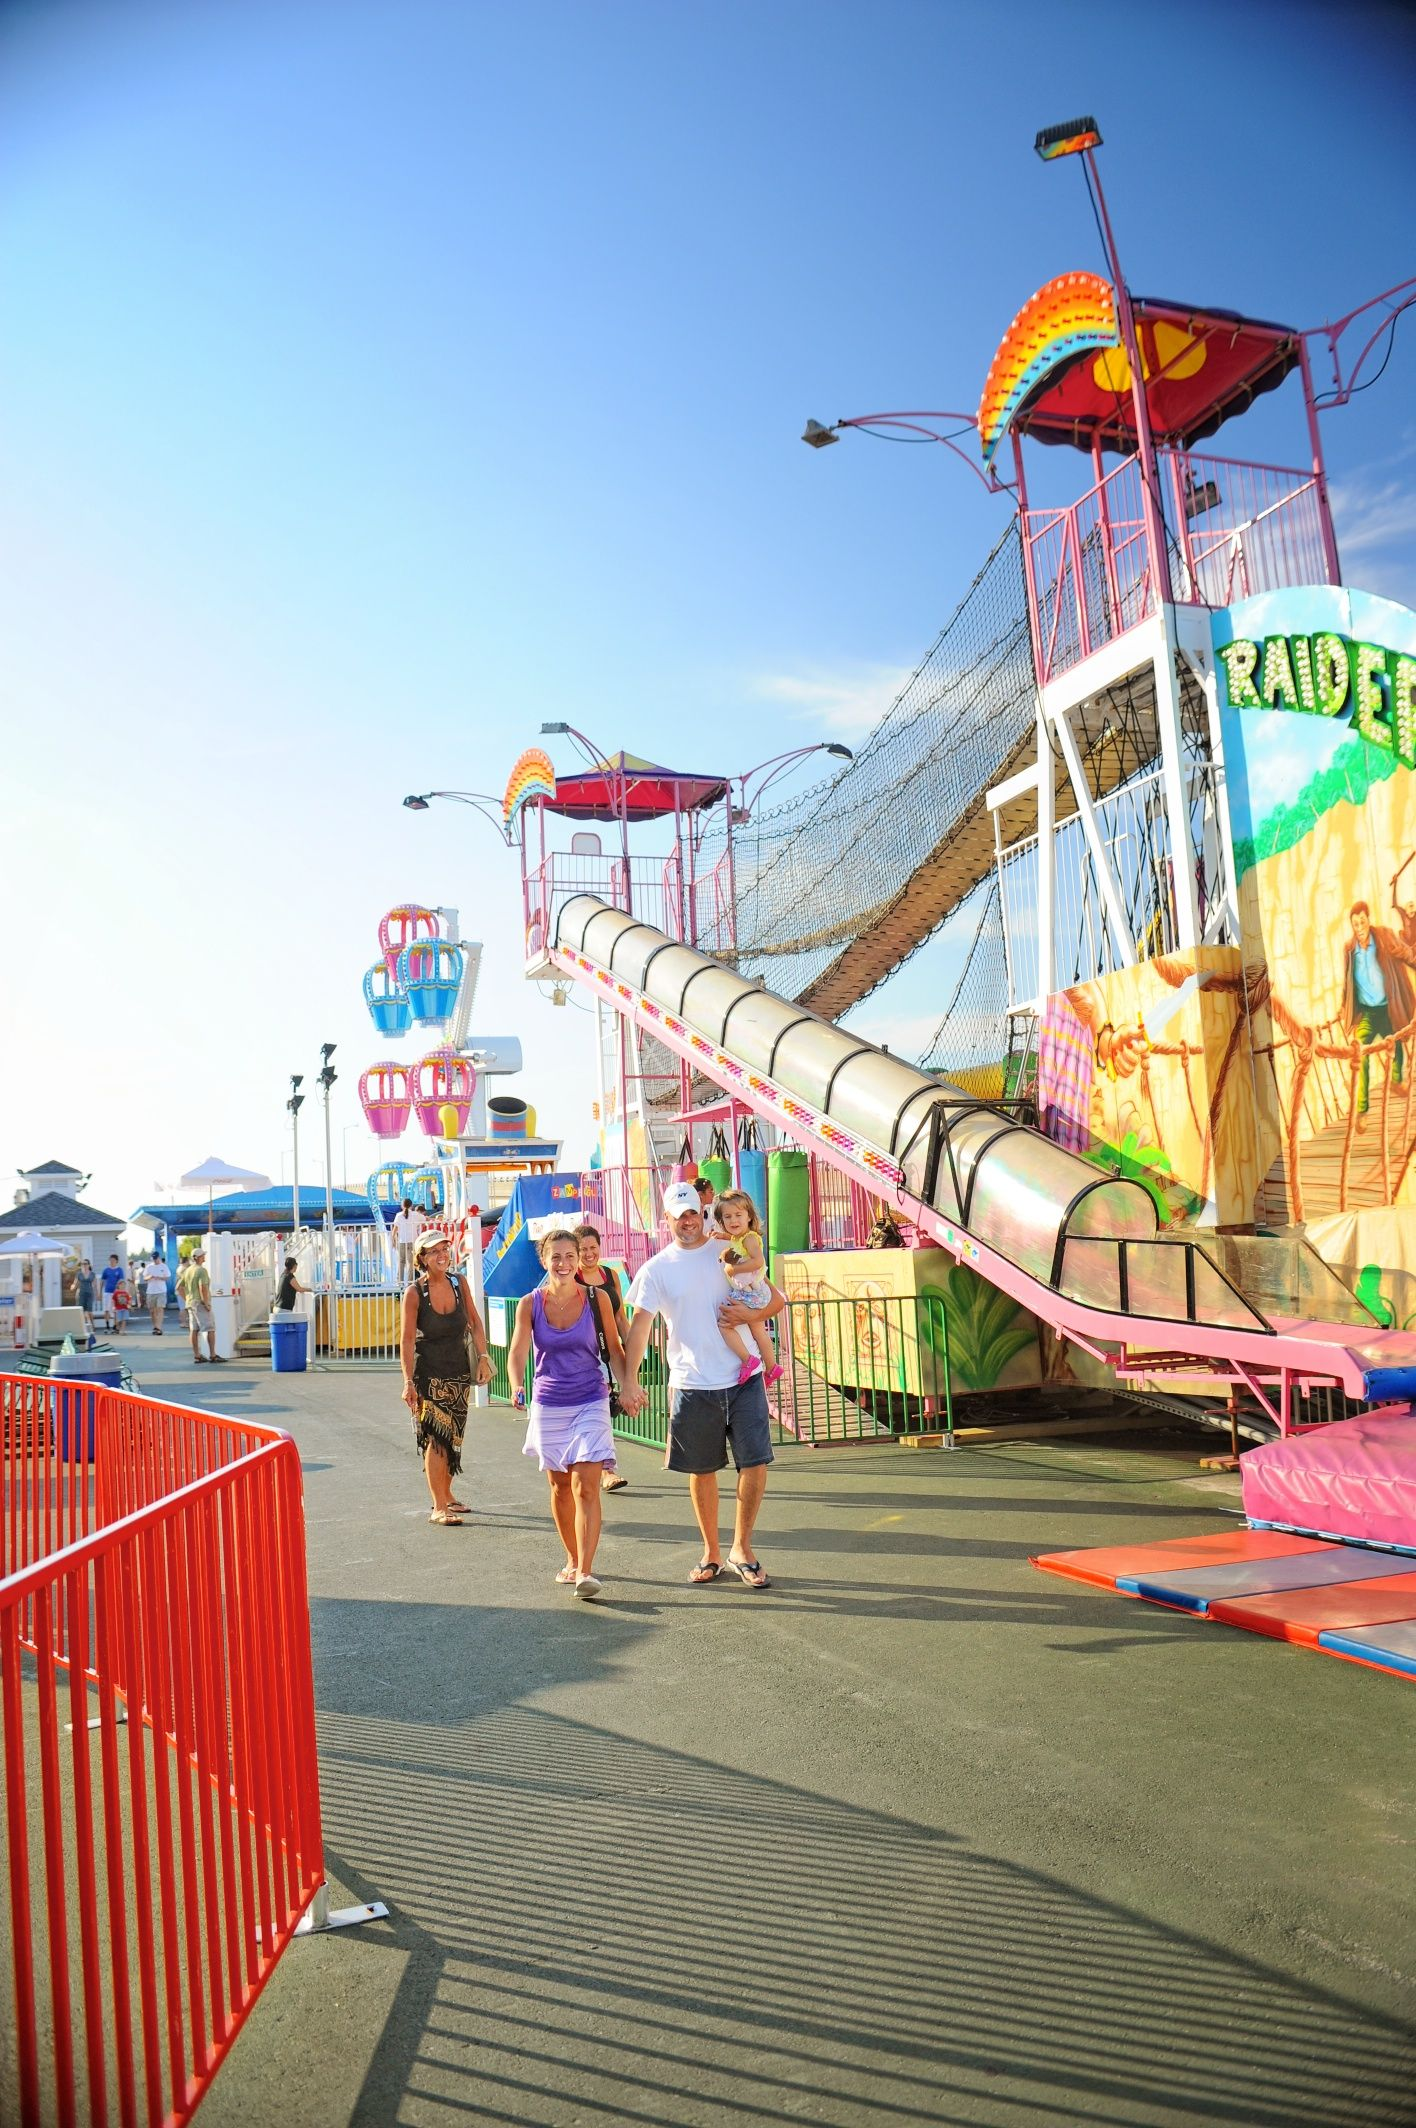 Enjoy The Rollercoasters And Rides At Wildwood Boardwalk On Your Summer Vacation Cape May Point Ocean City Je Wildwood Boardwalk Wildwood Nj Cape May County